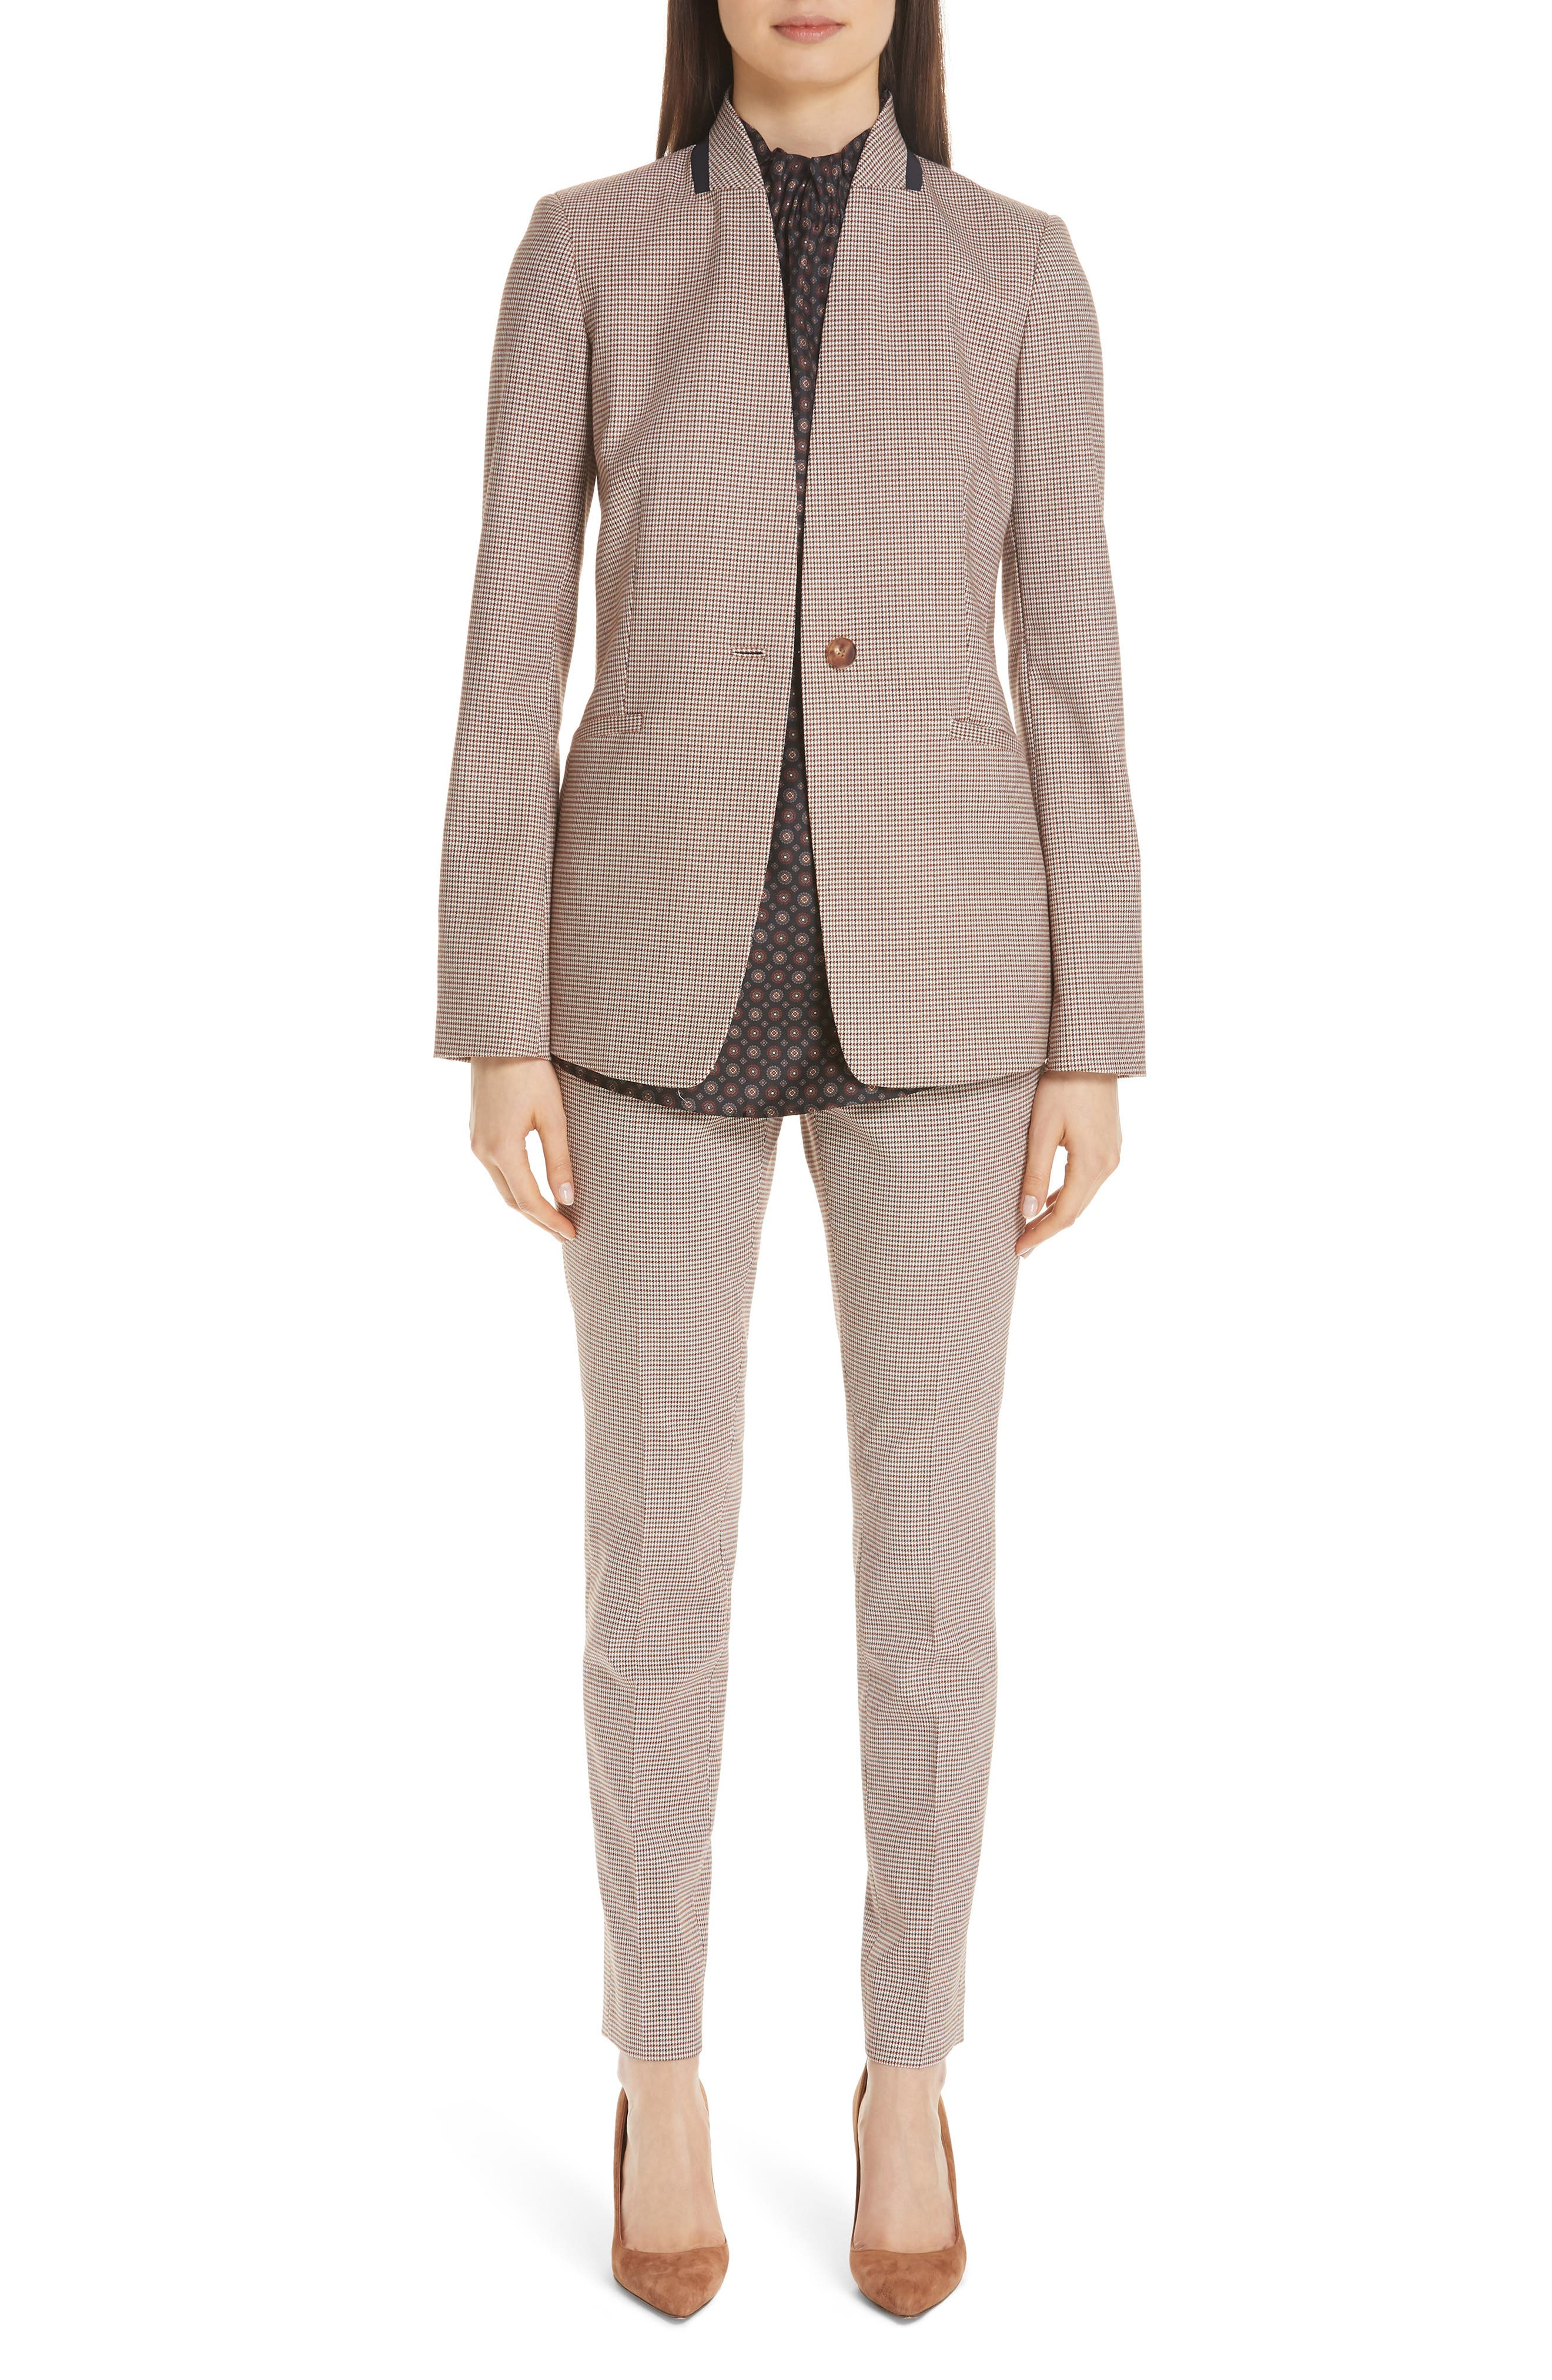 LAFAYETTE 148 NEW YORK,                             Darcy Plaid Jacket,                             Alternate thumbnail 7, color,                             600